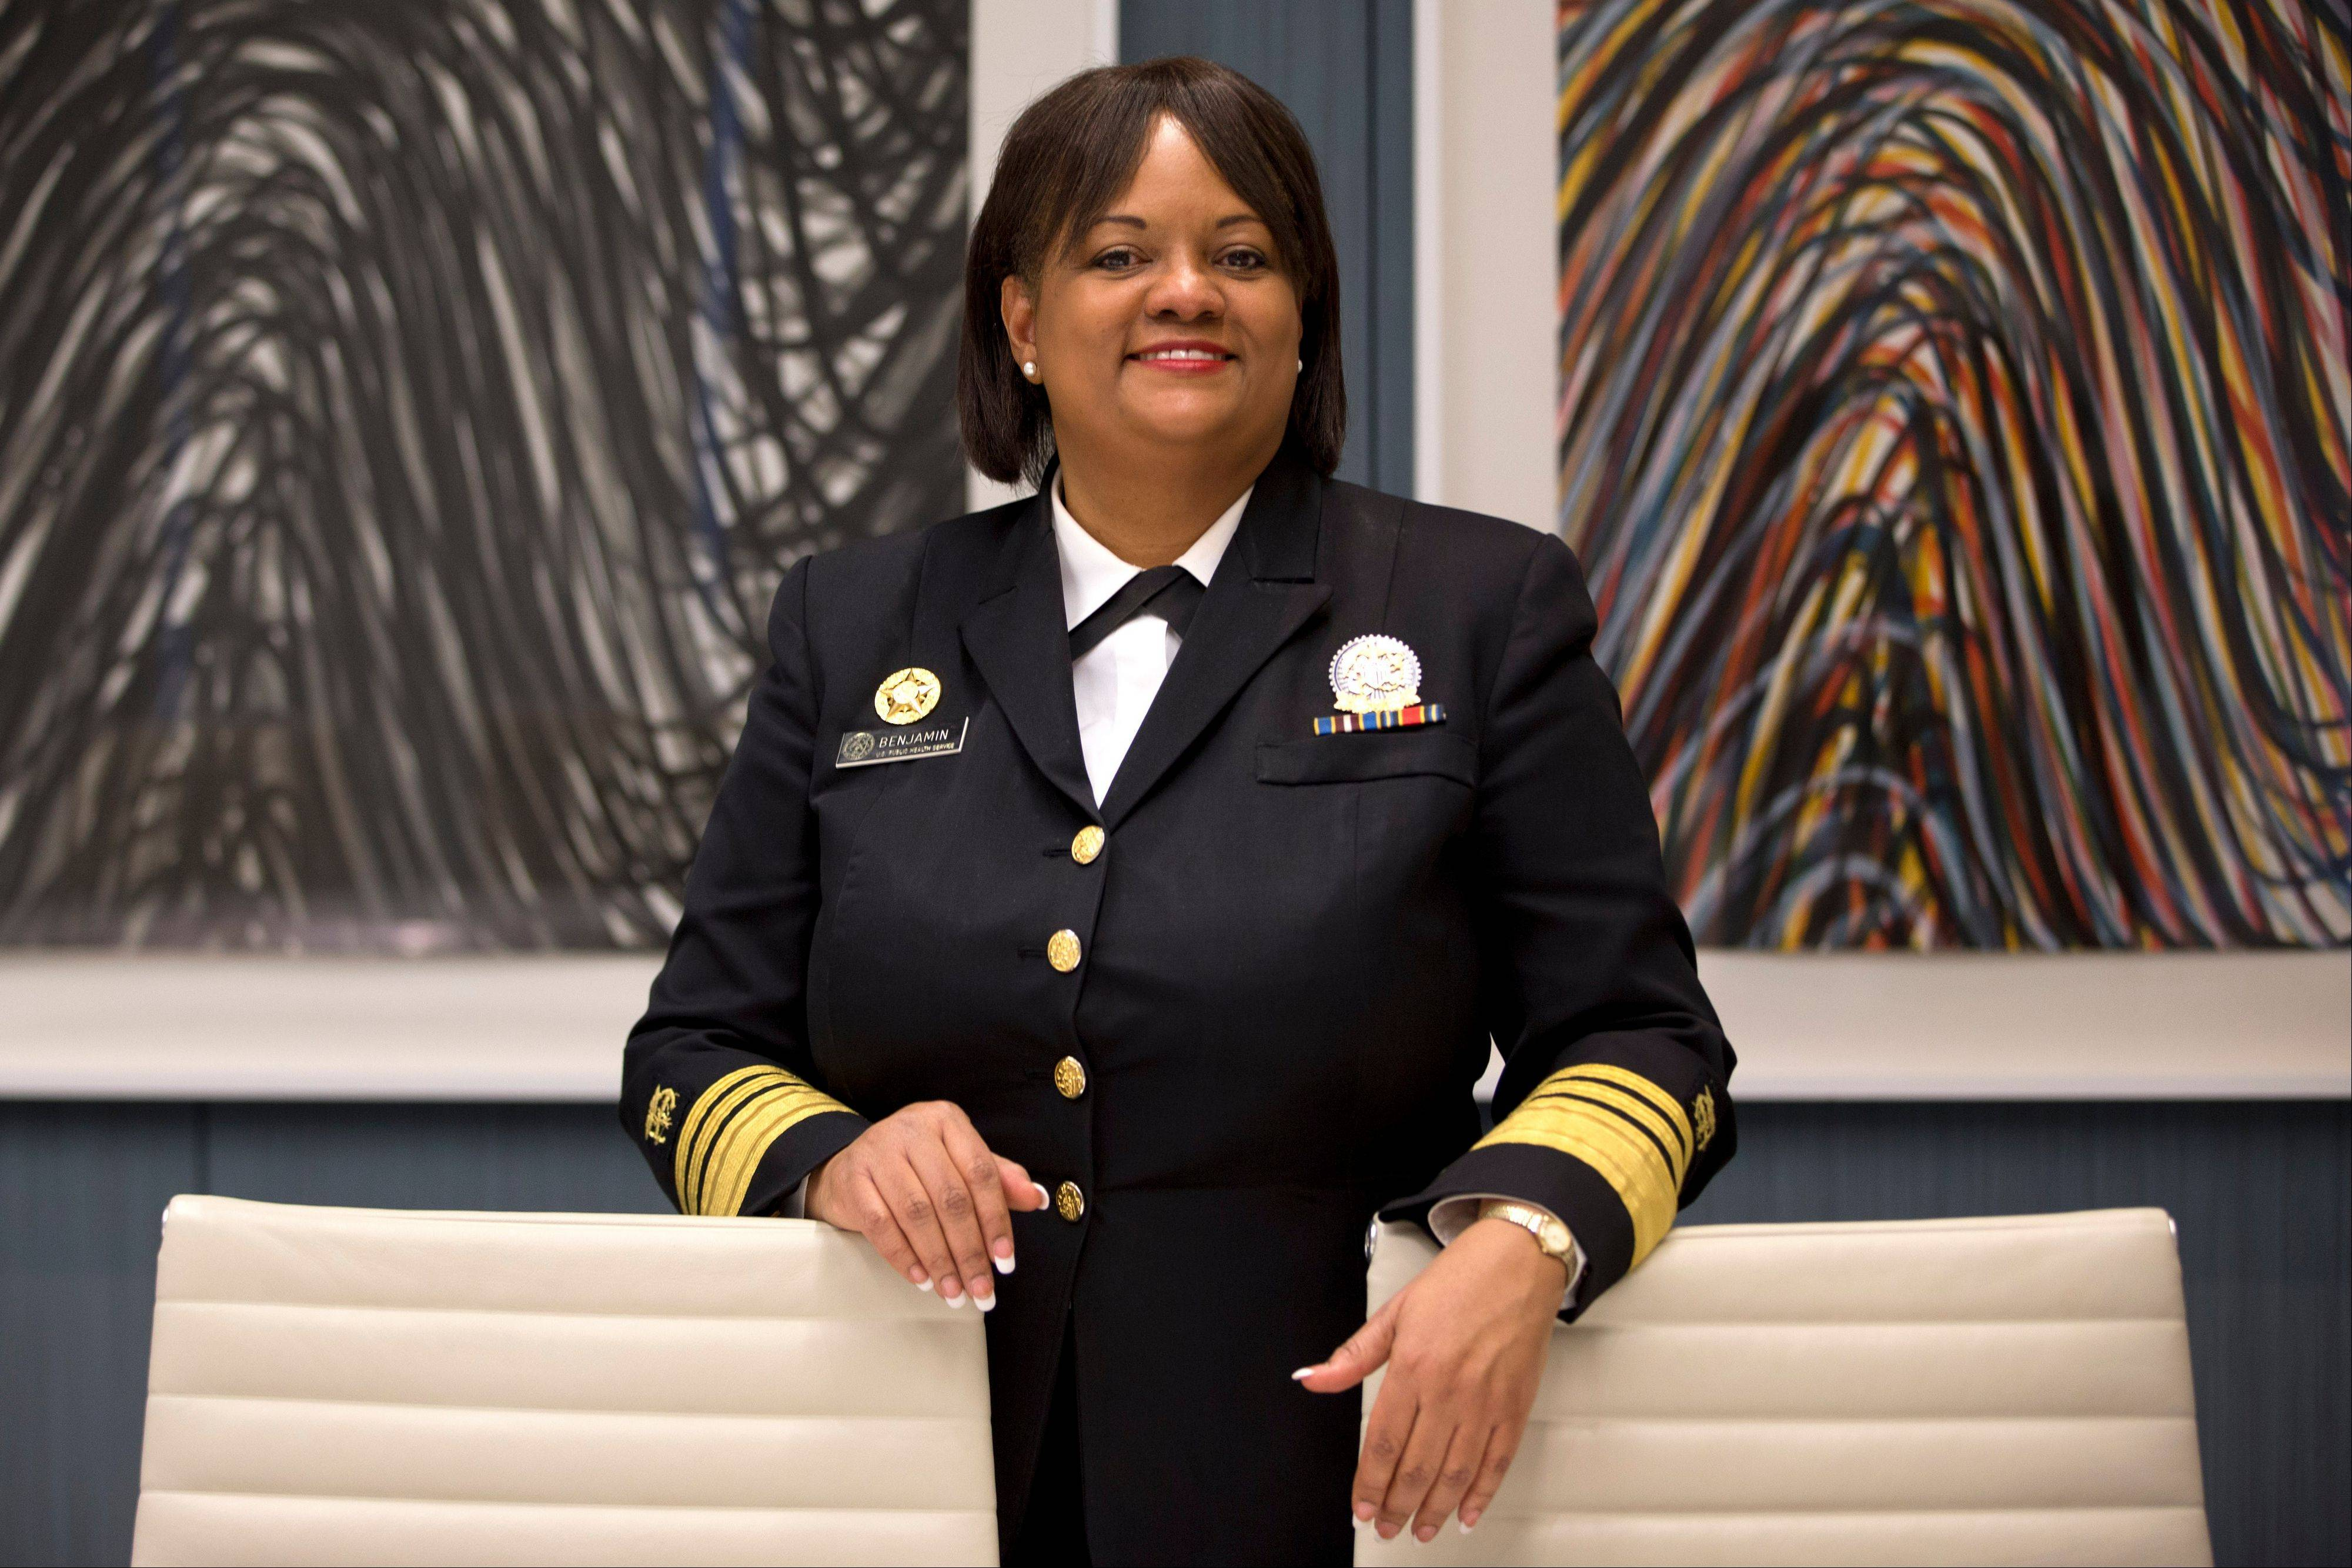 Regina Benjamin, Surgeon General of the United States has been speaking out on the need for African-American women to be more aware of the obesity epidemic.